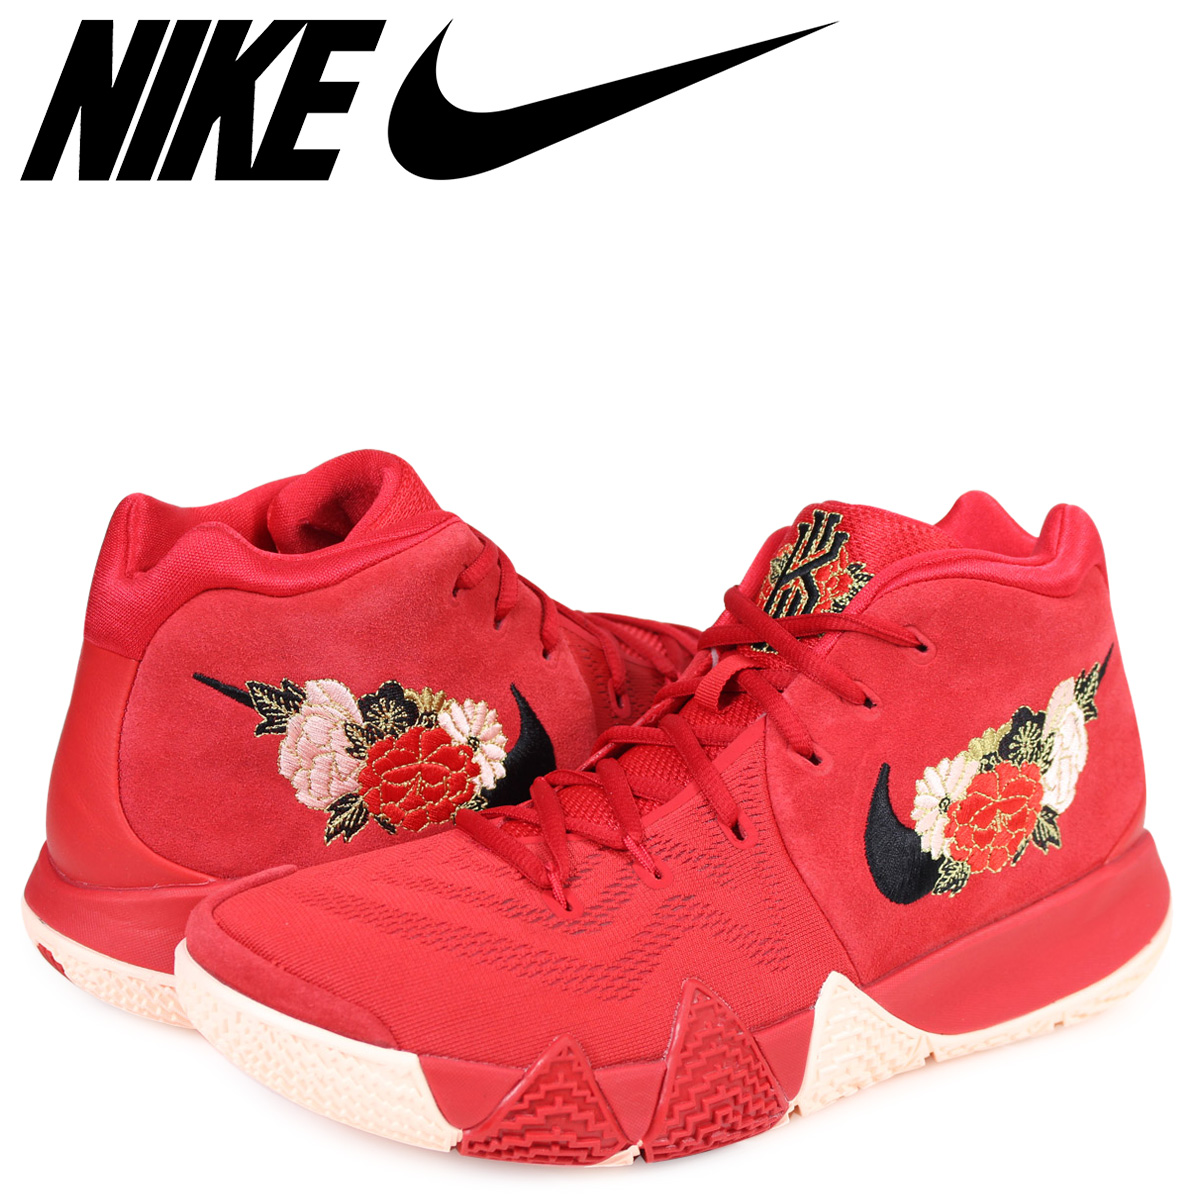 separation shoes d425b c6f49 NIKE KYRIE 4 EP CNY Nike chi Lee 4 sneakers men red 943,807-600 [183]